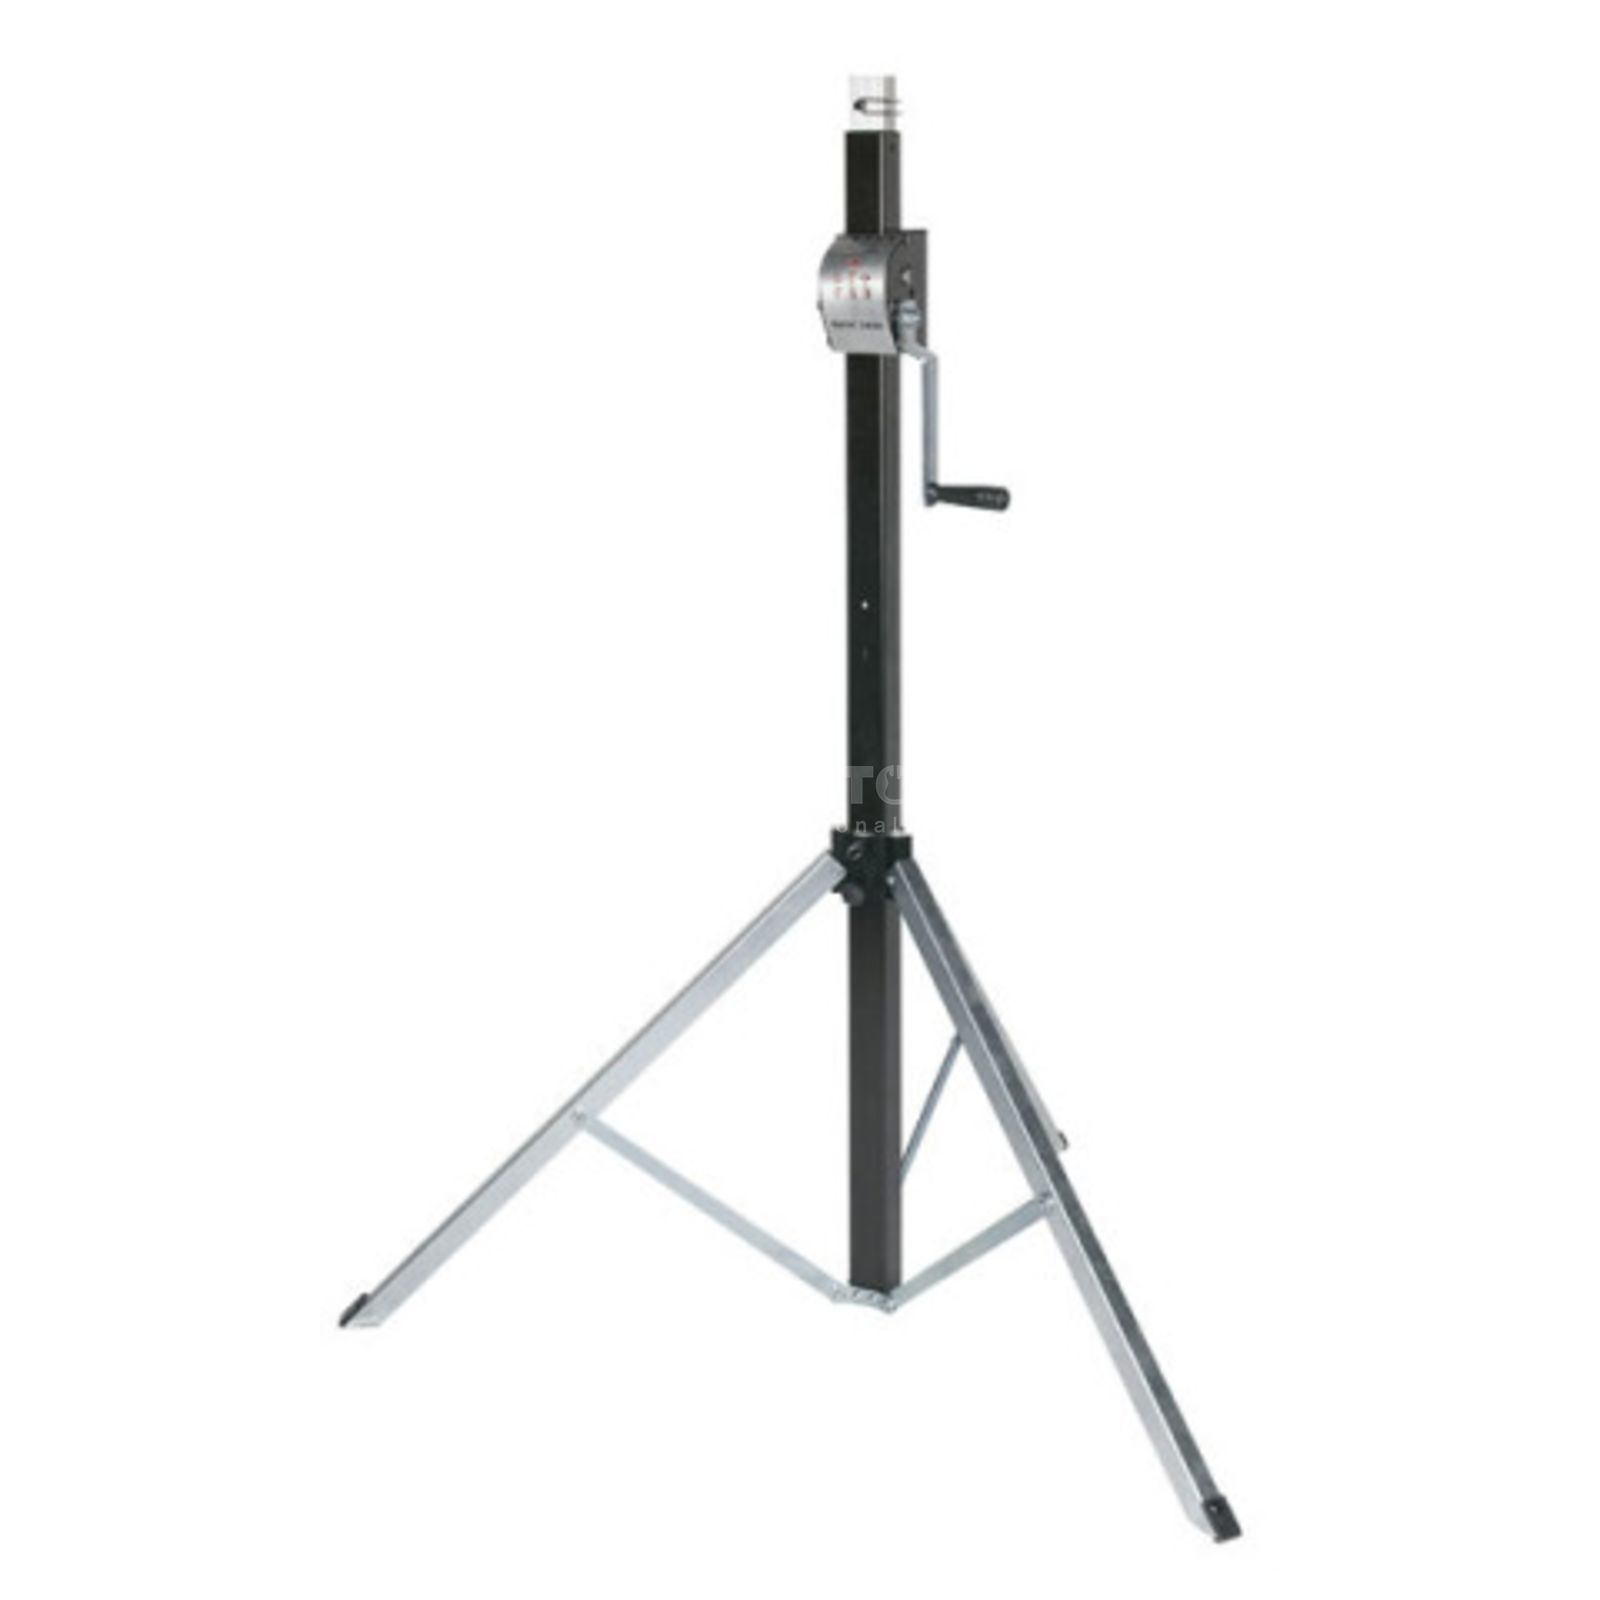 Showtec Basic 2800 Wind up stand (without Adapter) Produktbillede